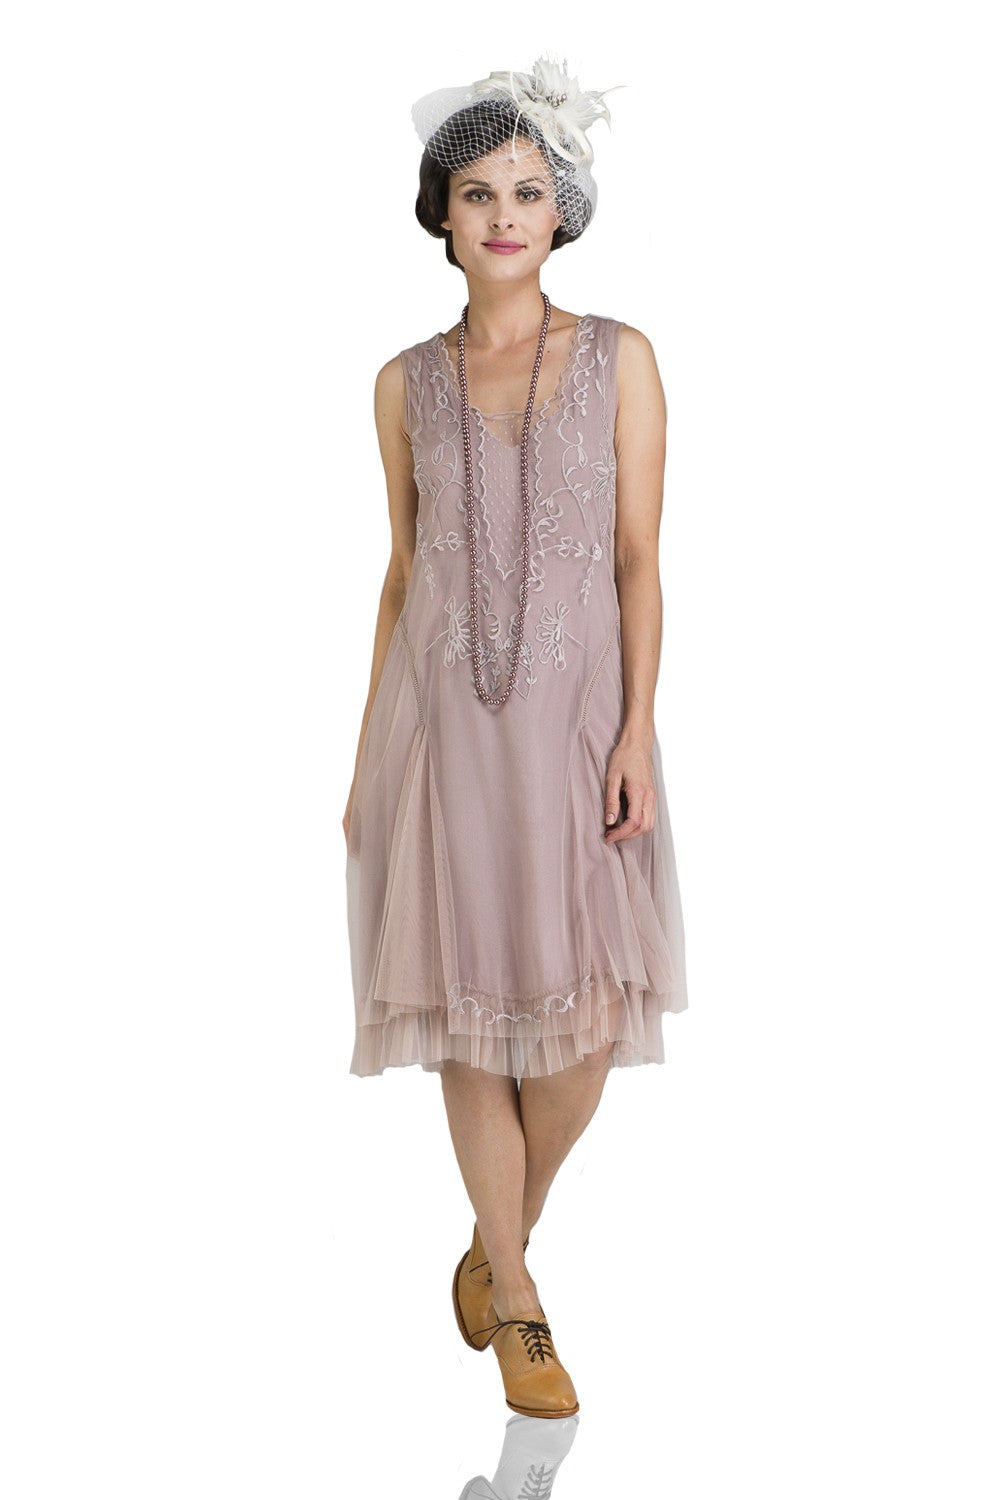 1920s Afternoon Dresses, White Tea Dresses Tara Vintage Style Party Dress in Amethyst by Nataya $174.00 AT vintagedancer.com